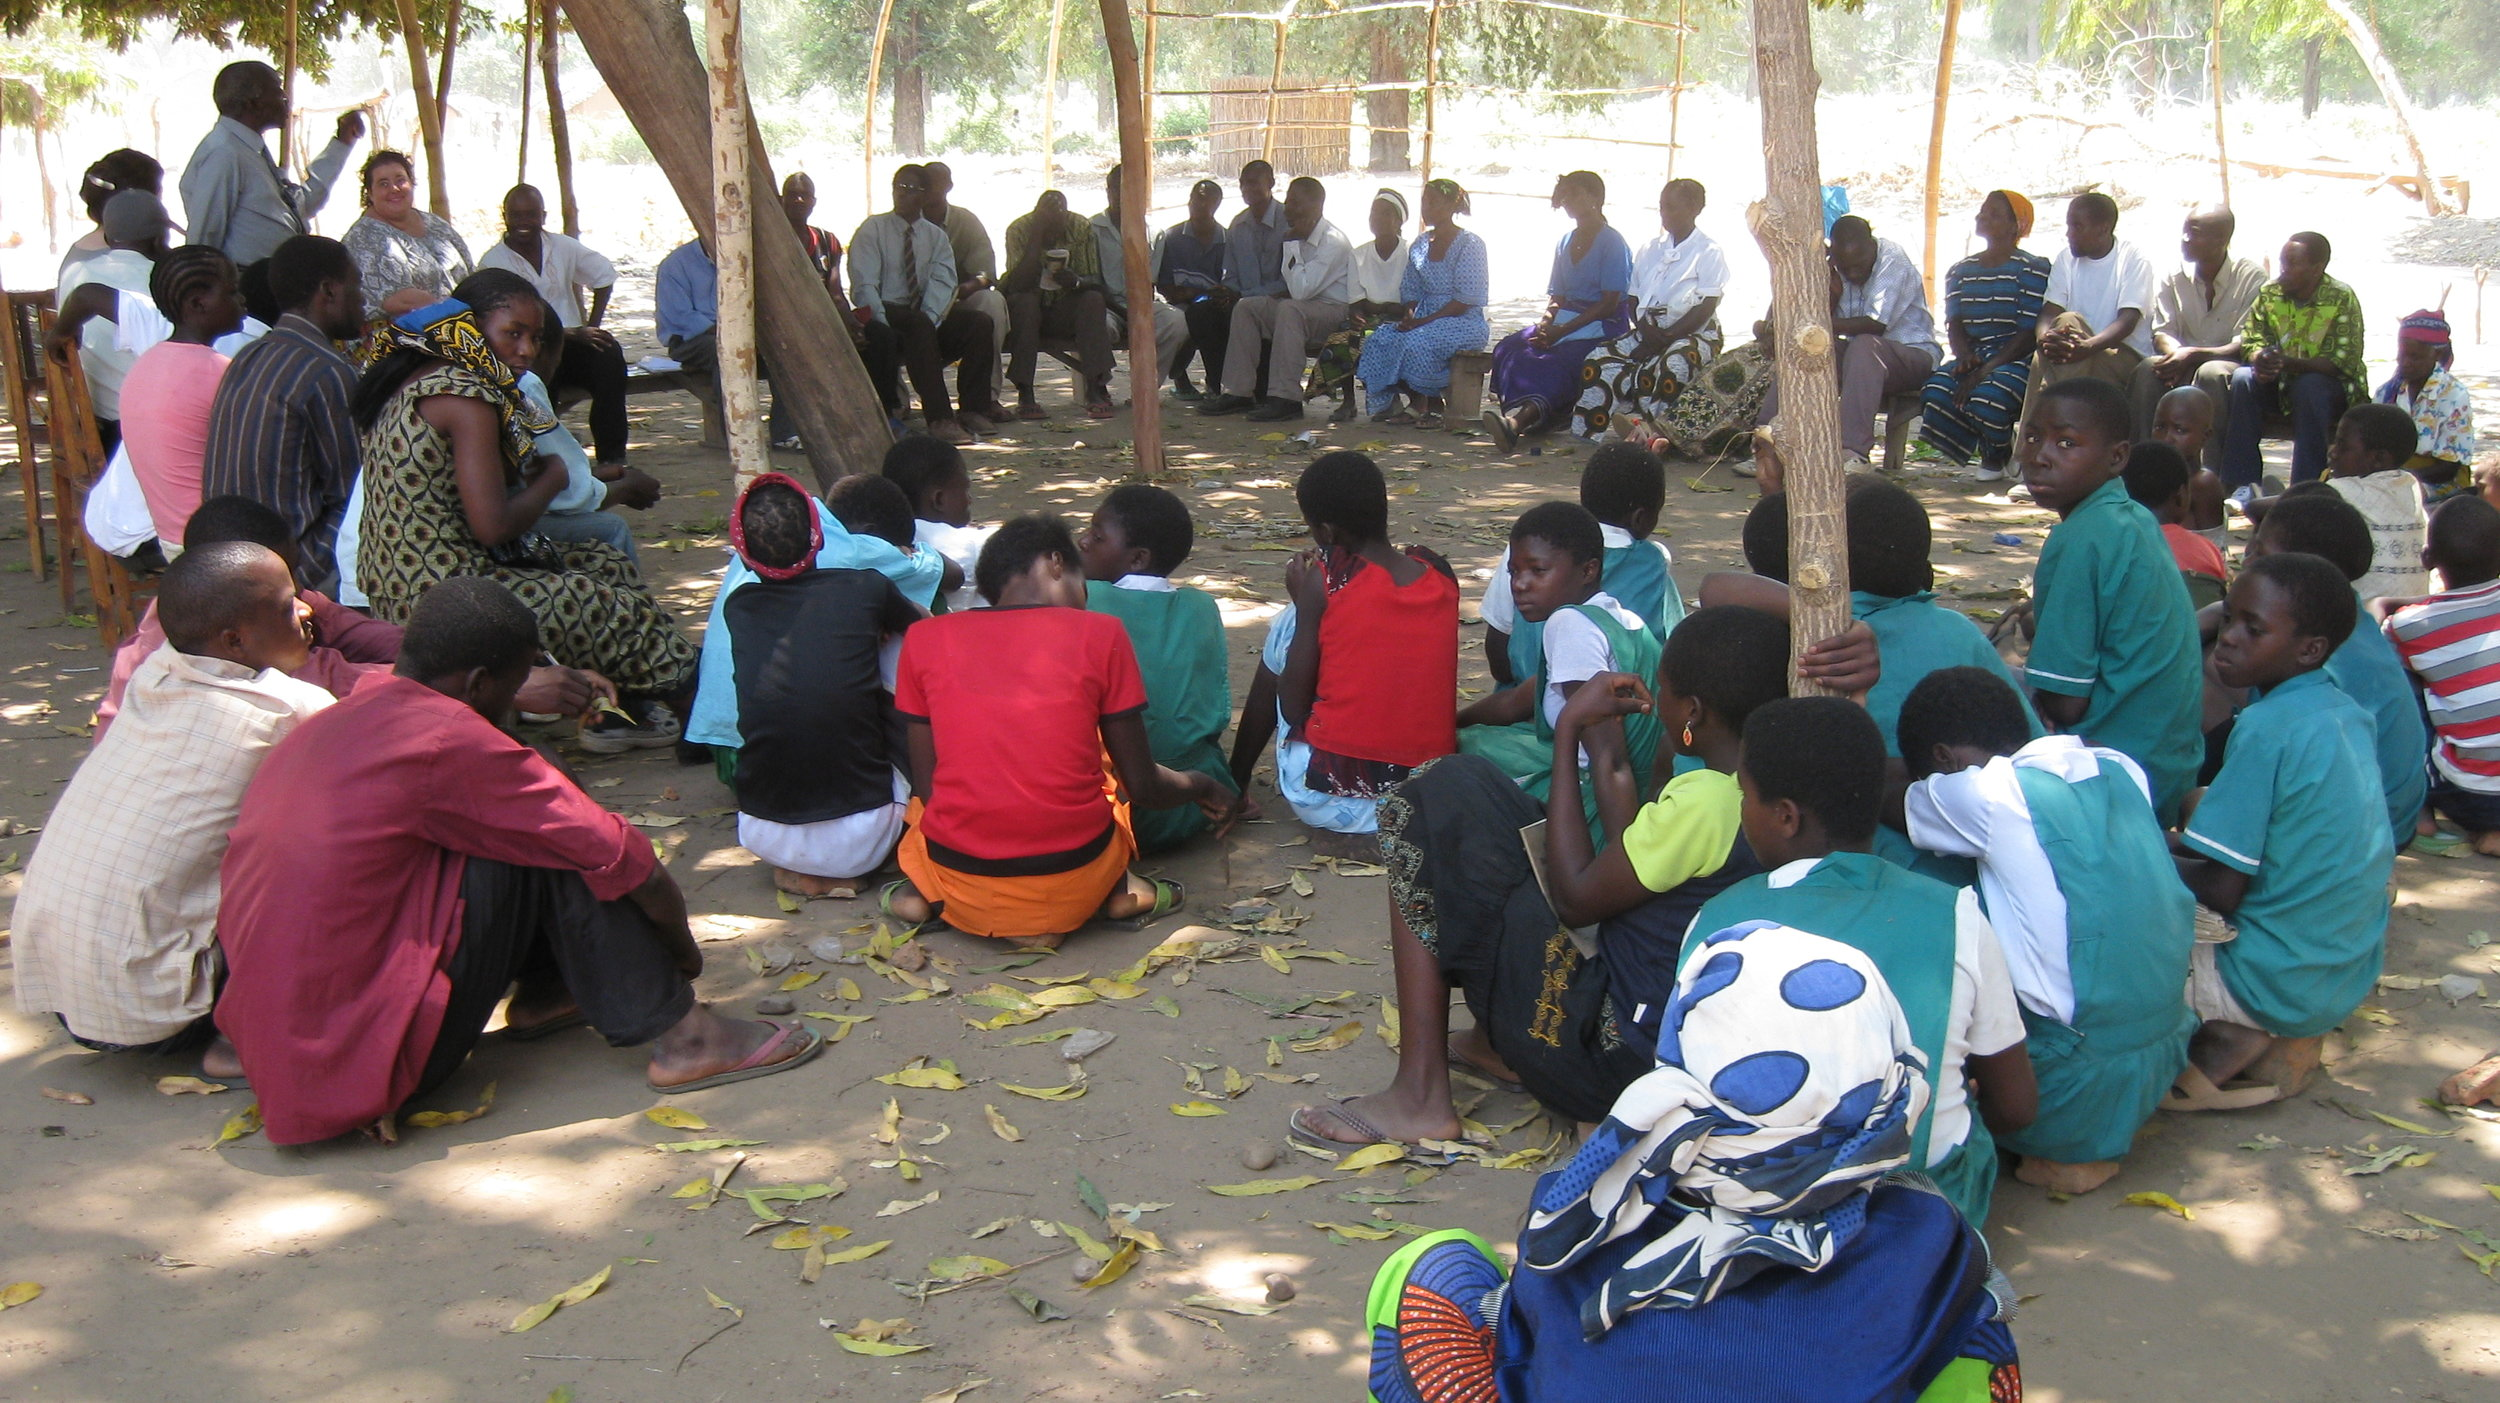 A group of African men, women and children gather outside in a shaded area under a tree.